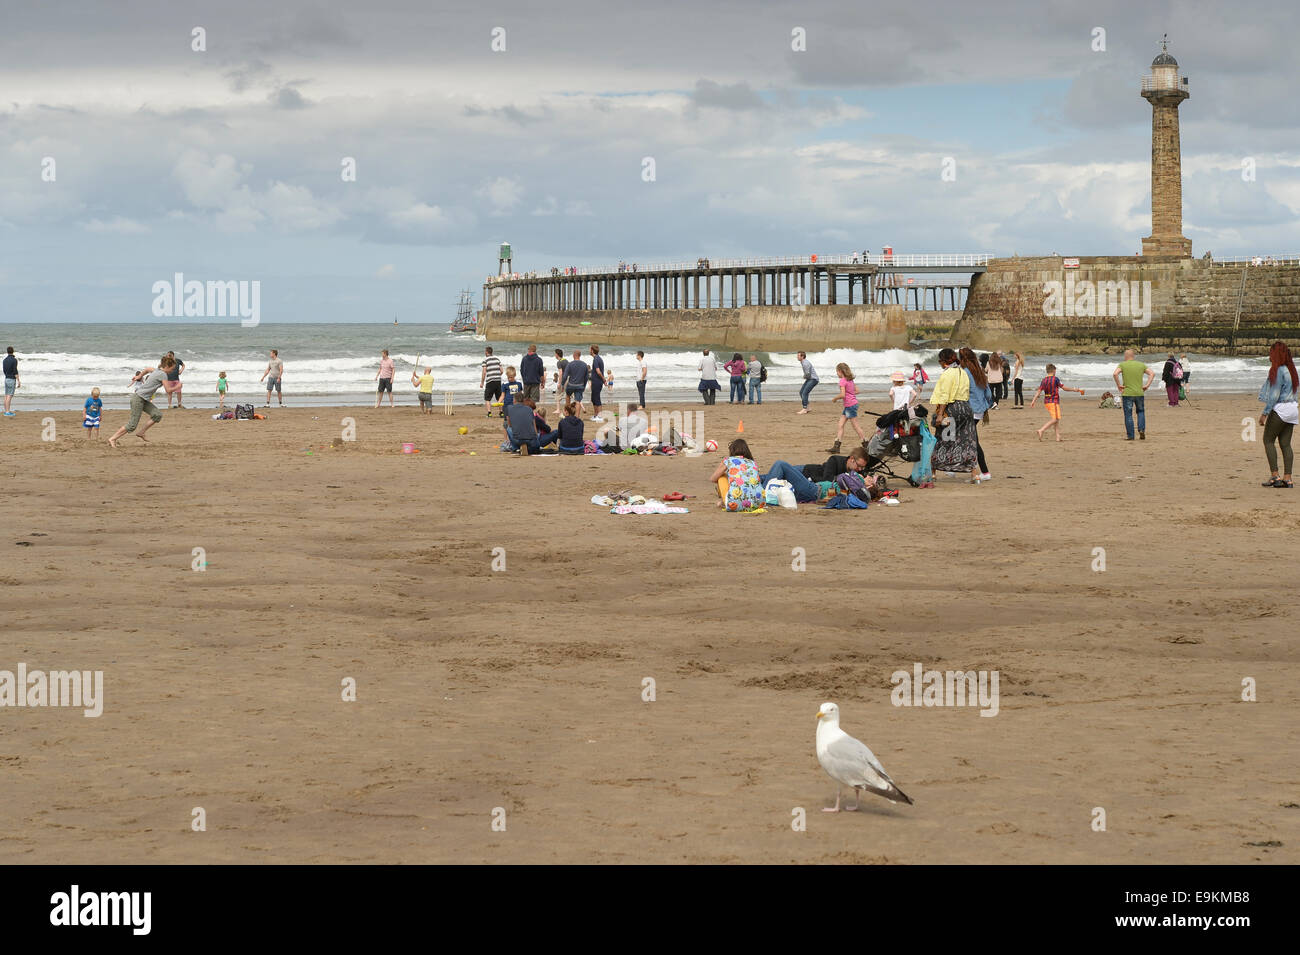 Holidaymakers on the beach on an overcast a cloudy summer day near Whitby Pier, N Yorks, UK. - Stock Image